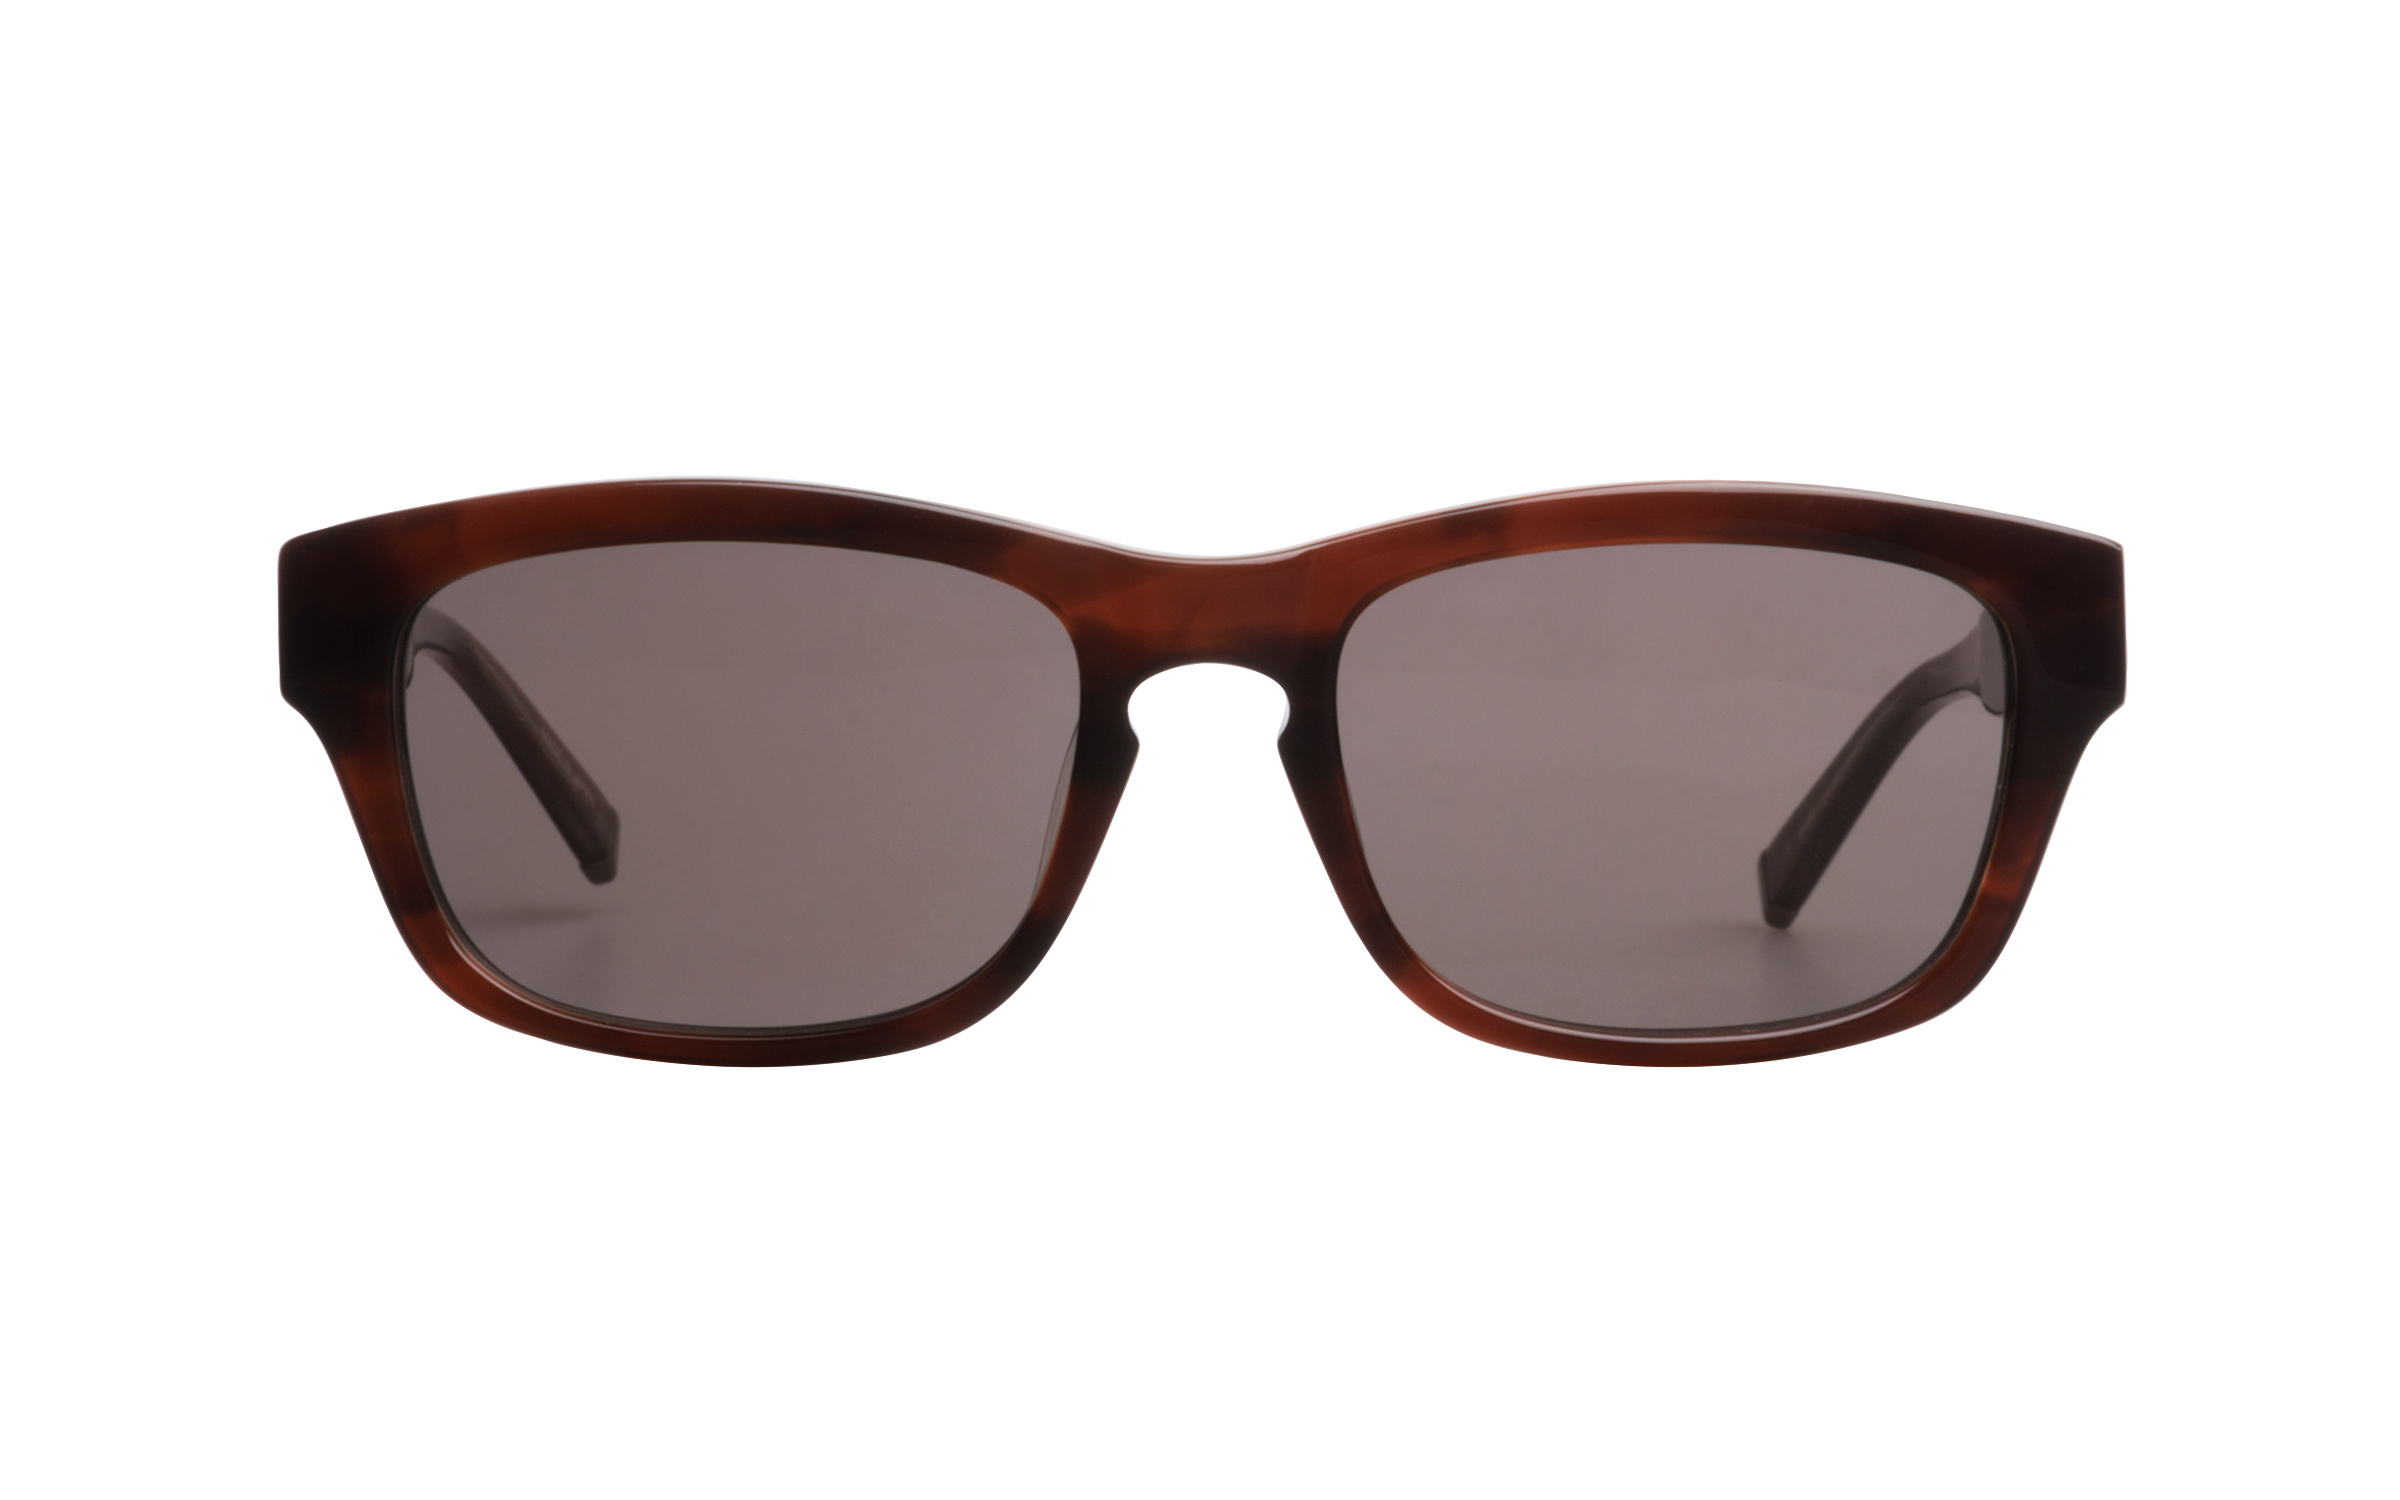 Vintage_Sunglasses_Brown_John_Varvatos_Online_Coastal